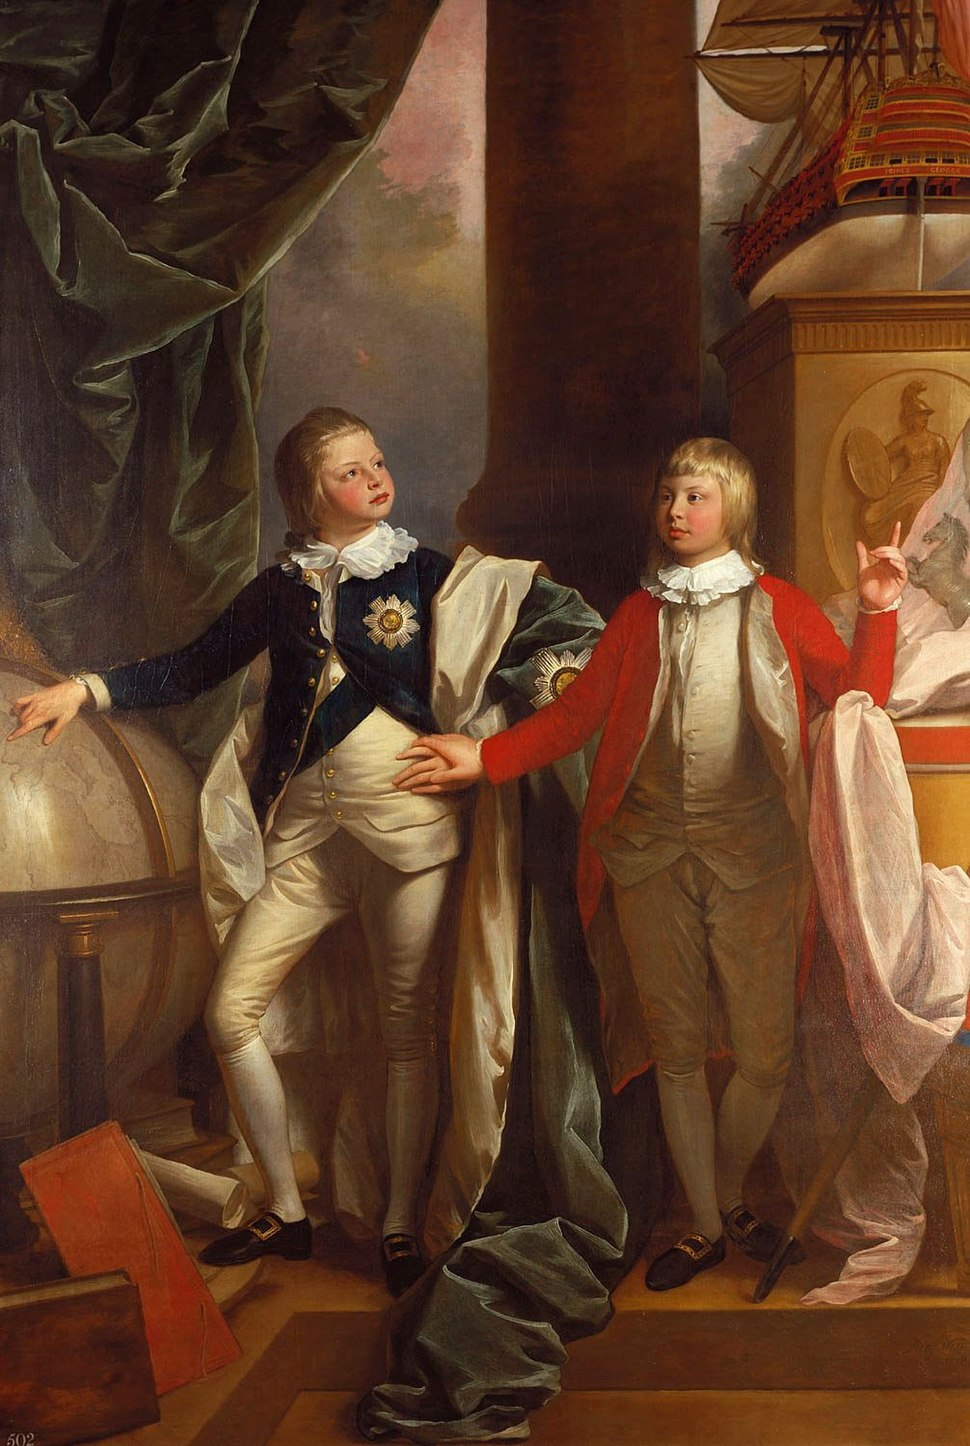 Prince William and Prince Edward 1778